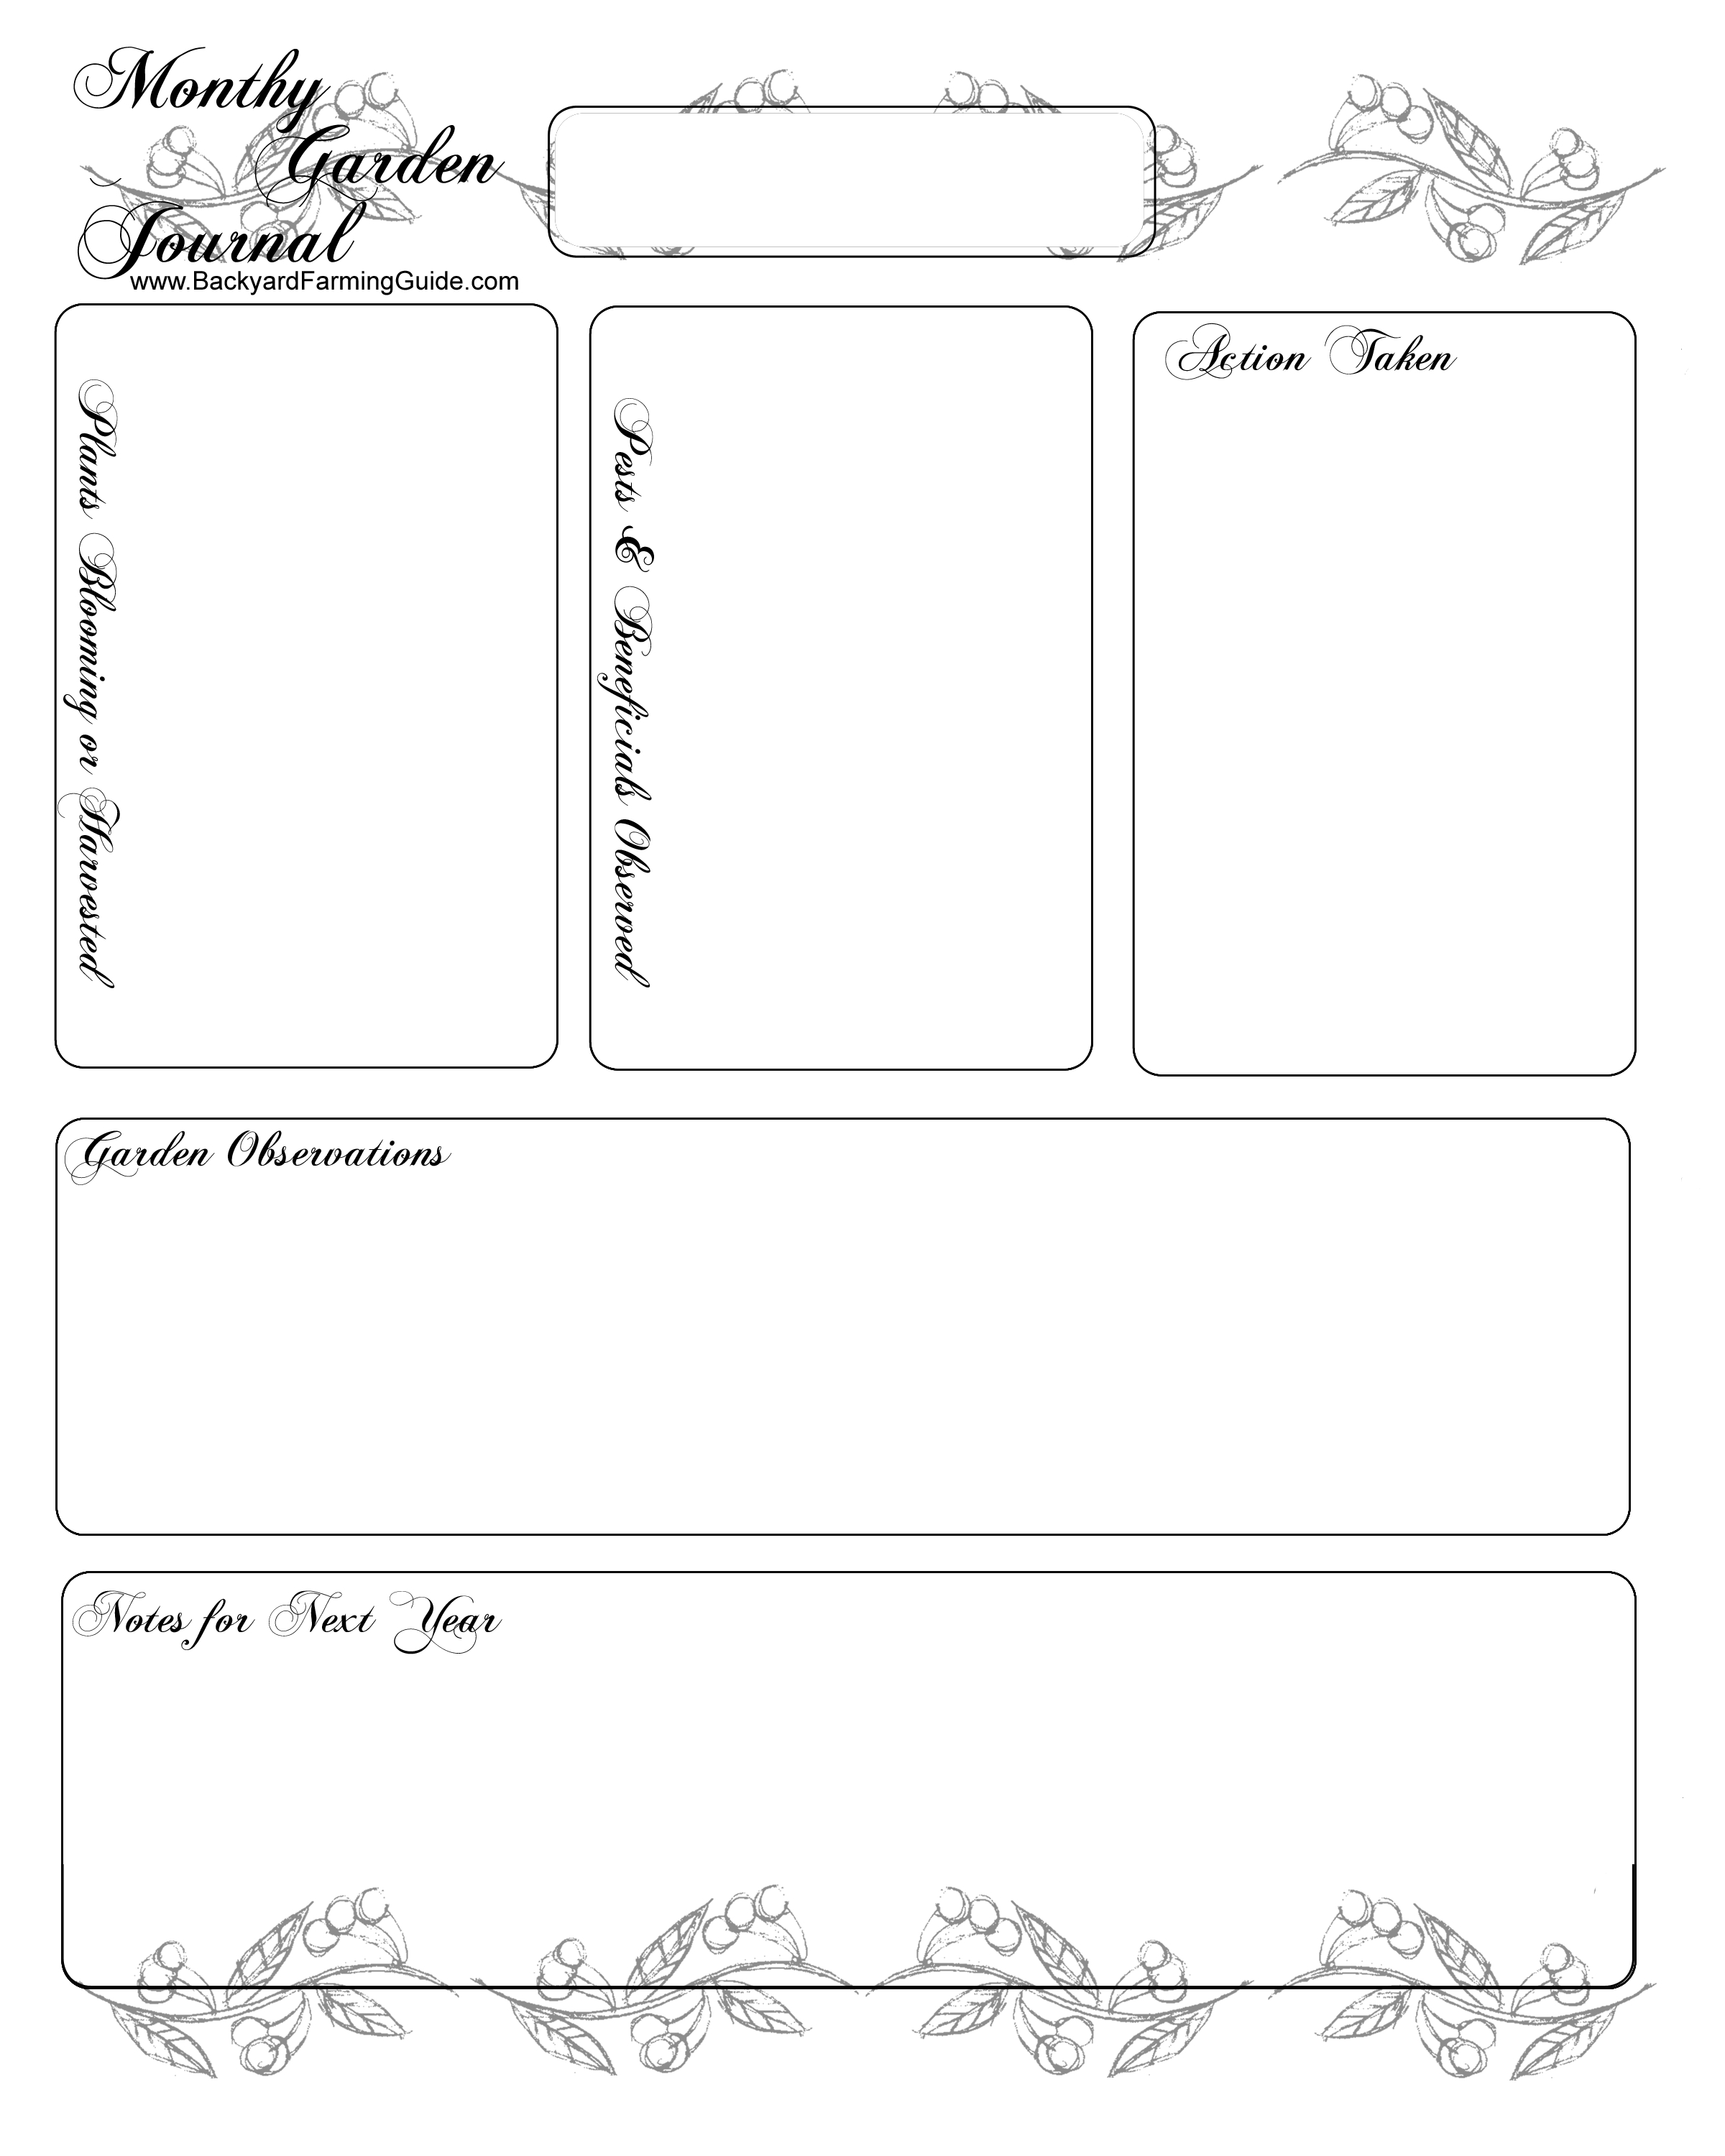 Free Printable Gardening Journal Pages - Free Printable Journal Pages